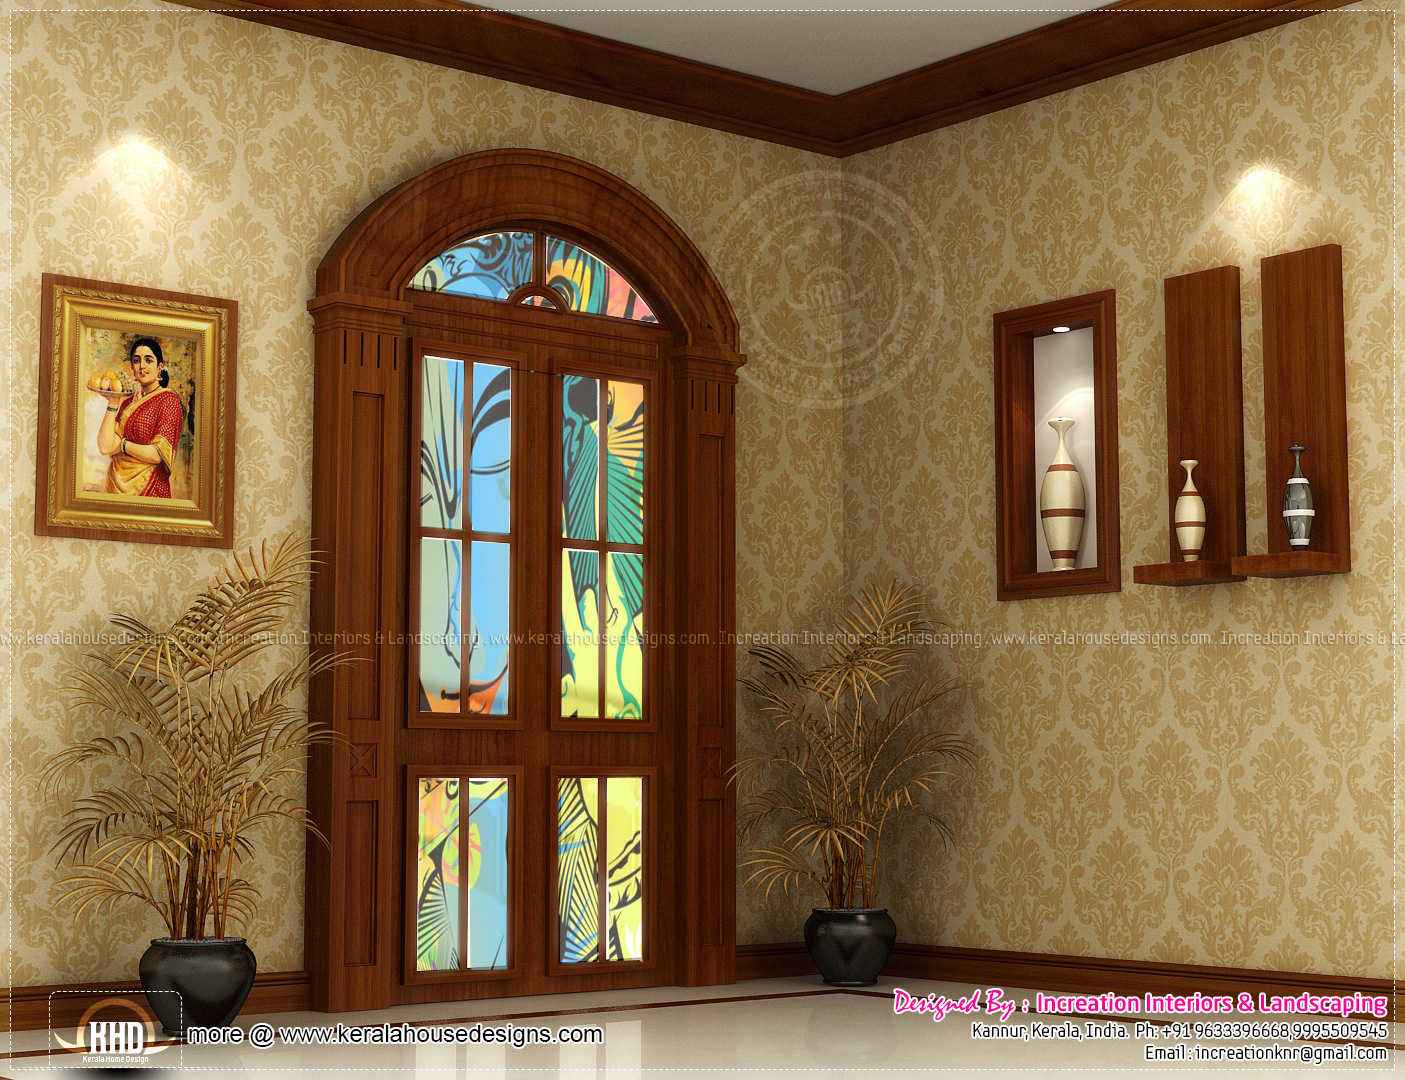 Interior designs by increation kannur kerala home for Foyer designs india